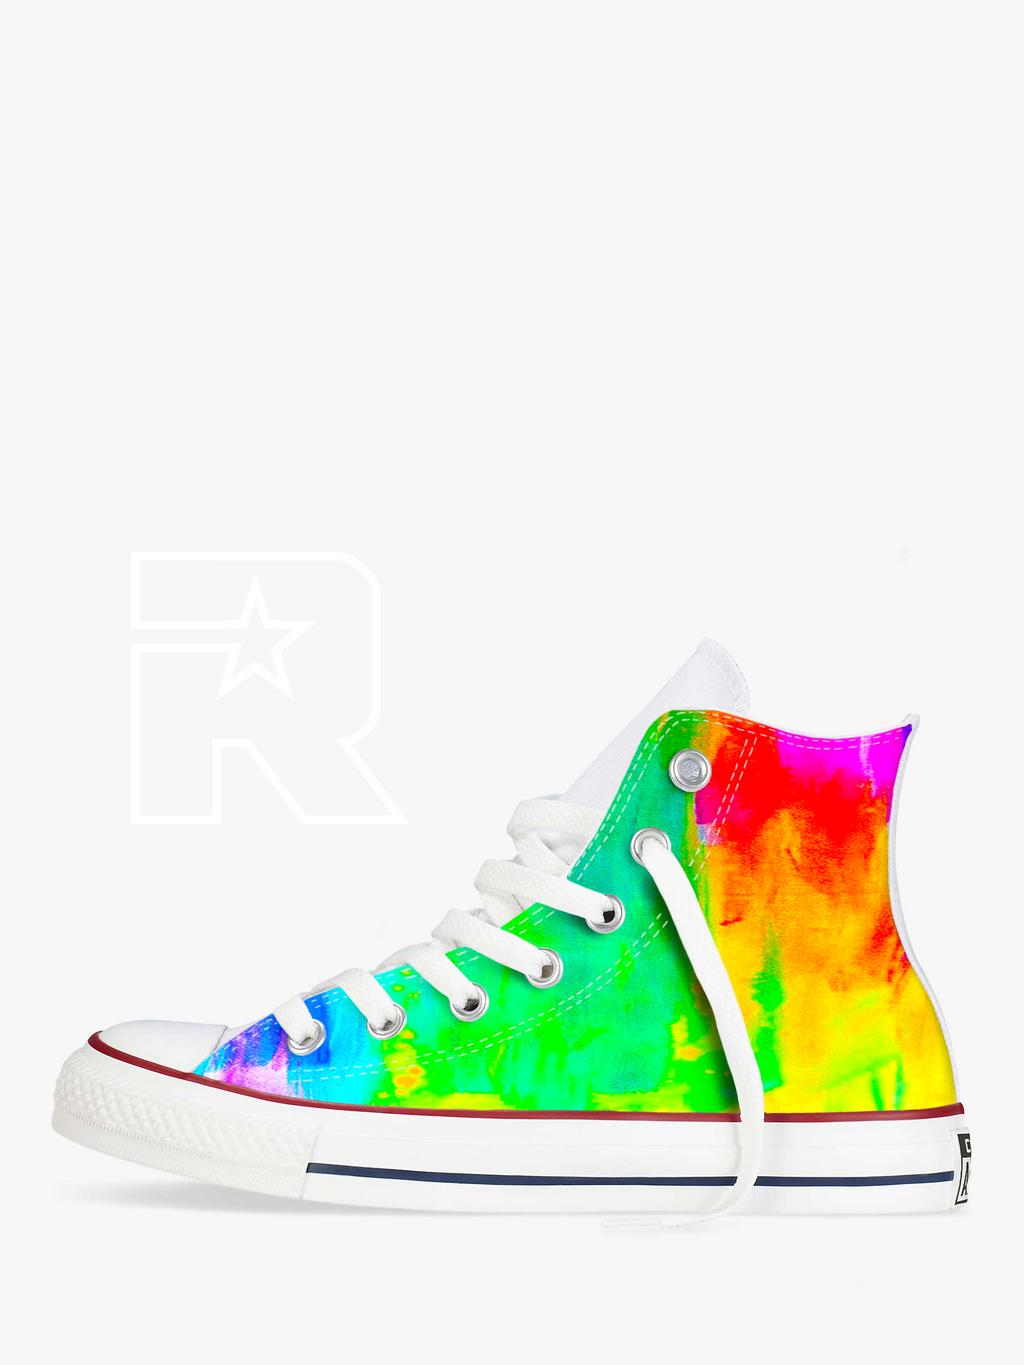 Neon Dreams High Top Converse